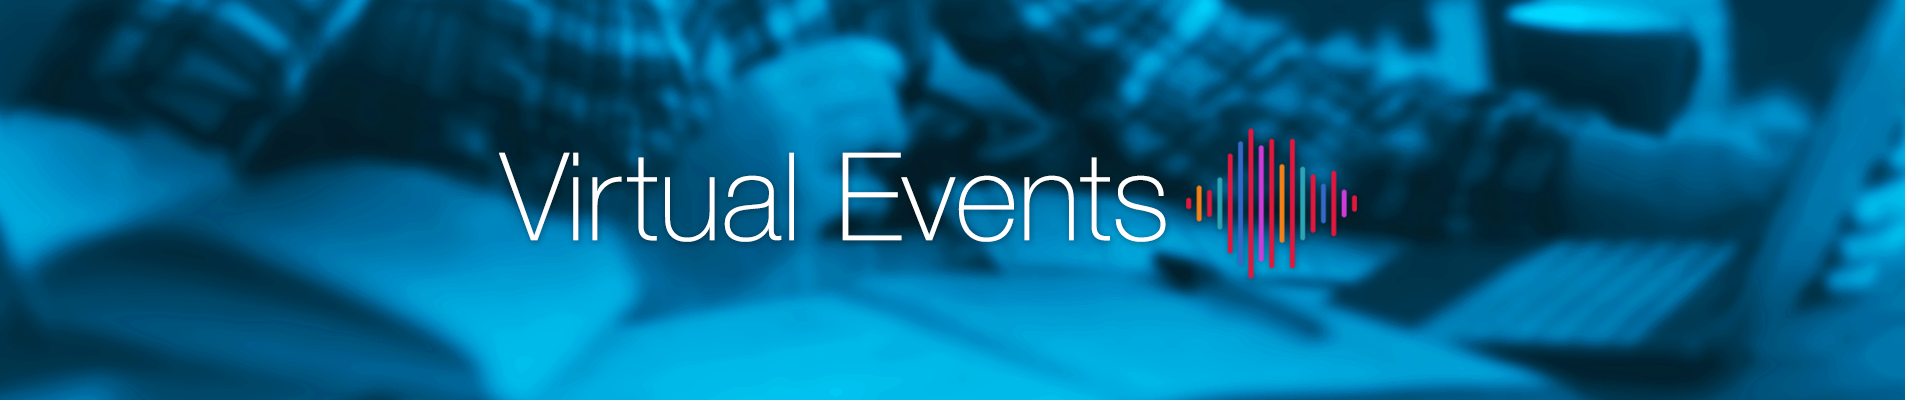 Sadlier Webinars Virtual Events